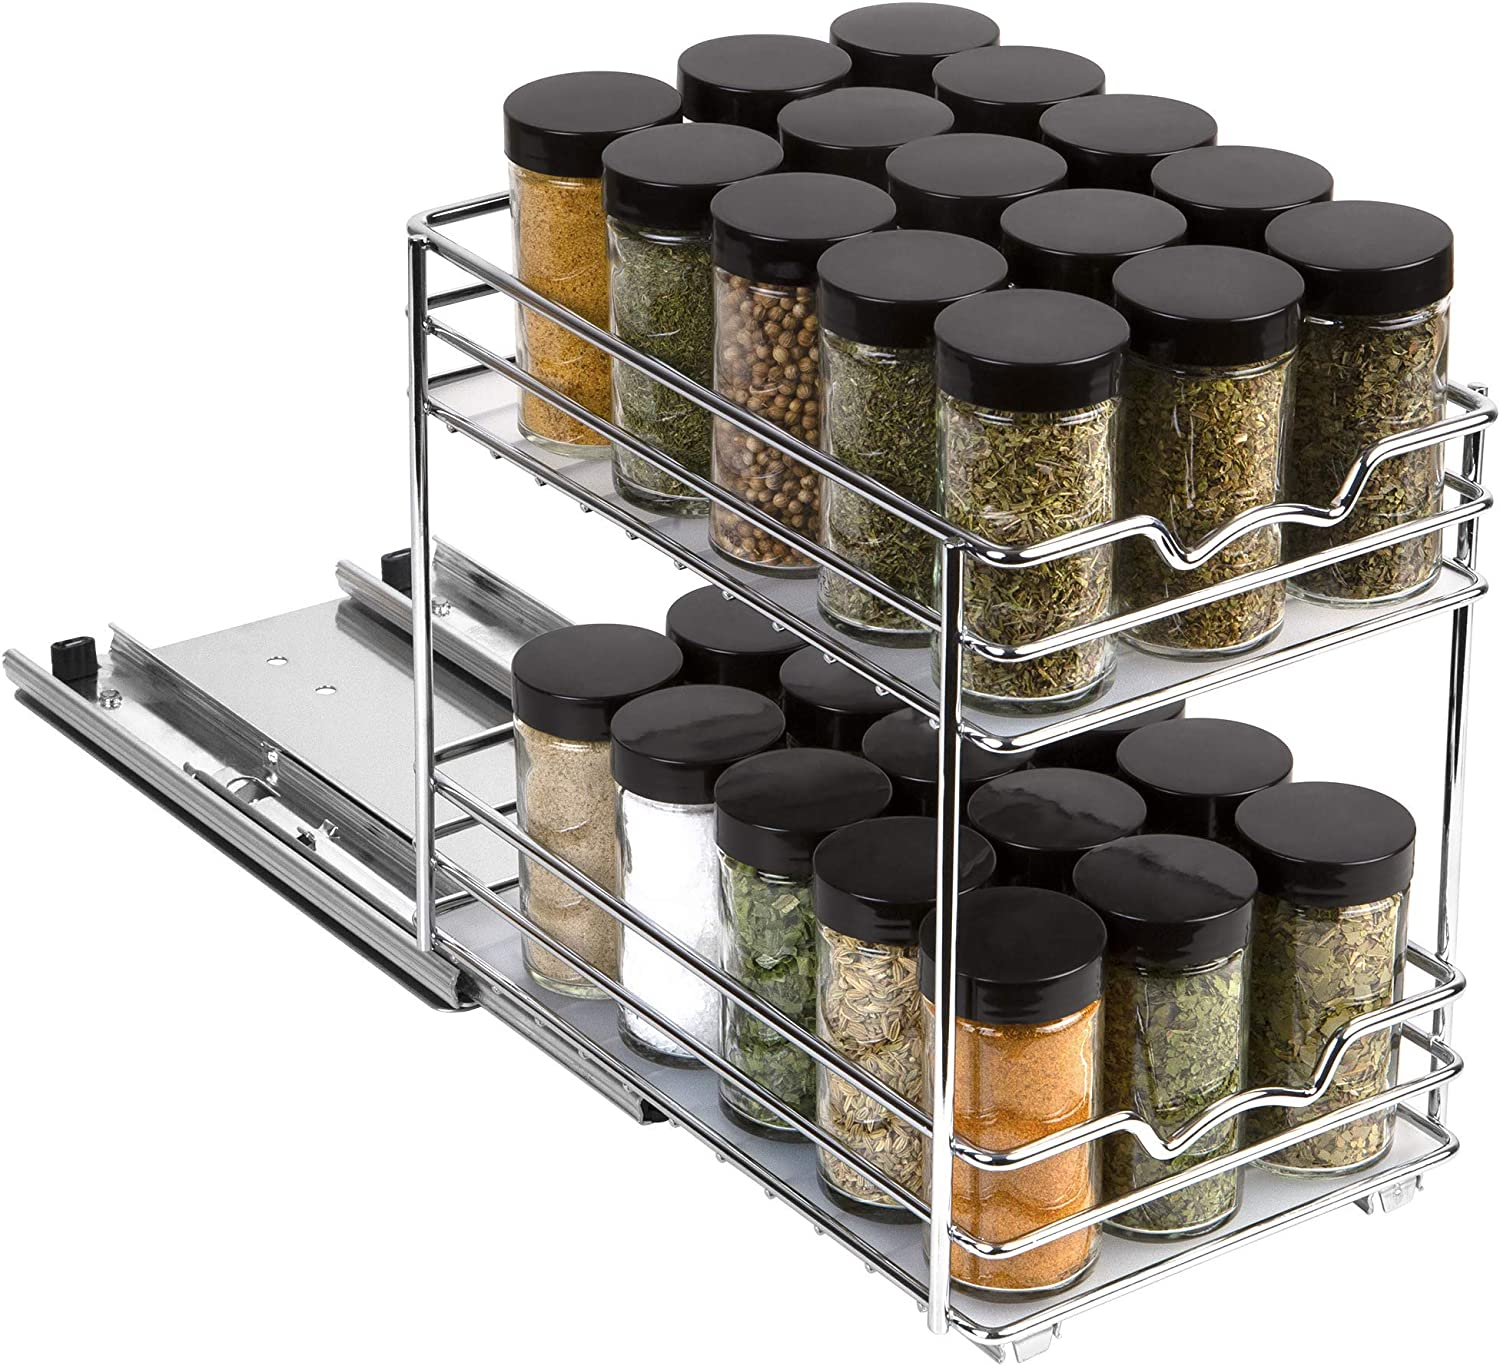 Pull Out Spice Rack Organizer for Cabinet – Heavy Duty Slide Out Double Rack 6 -3/8